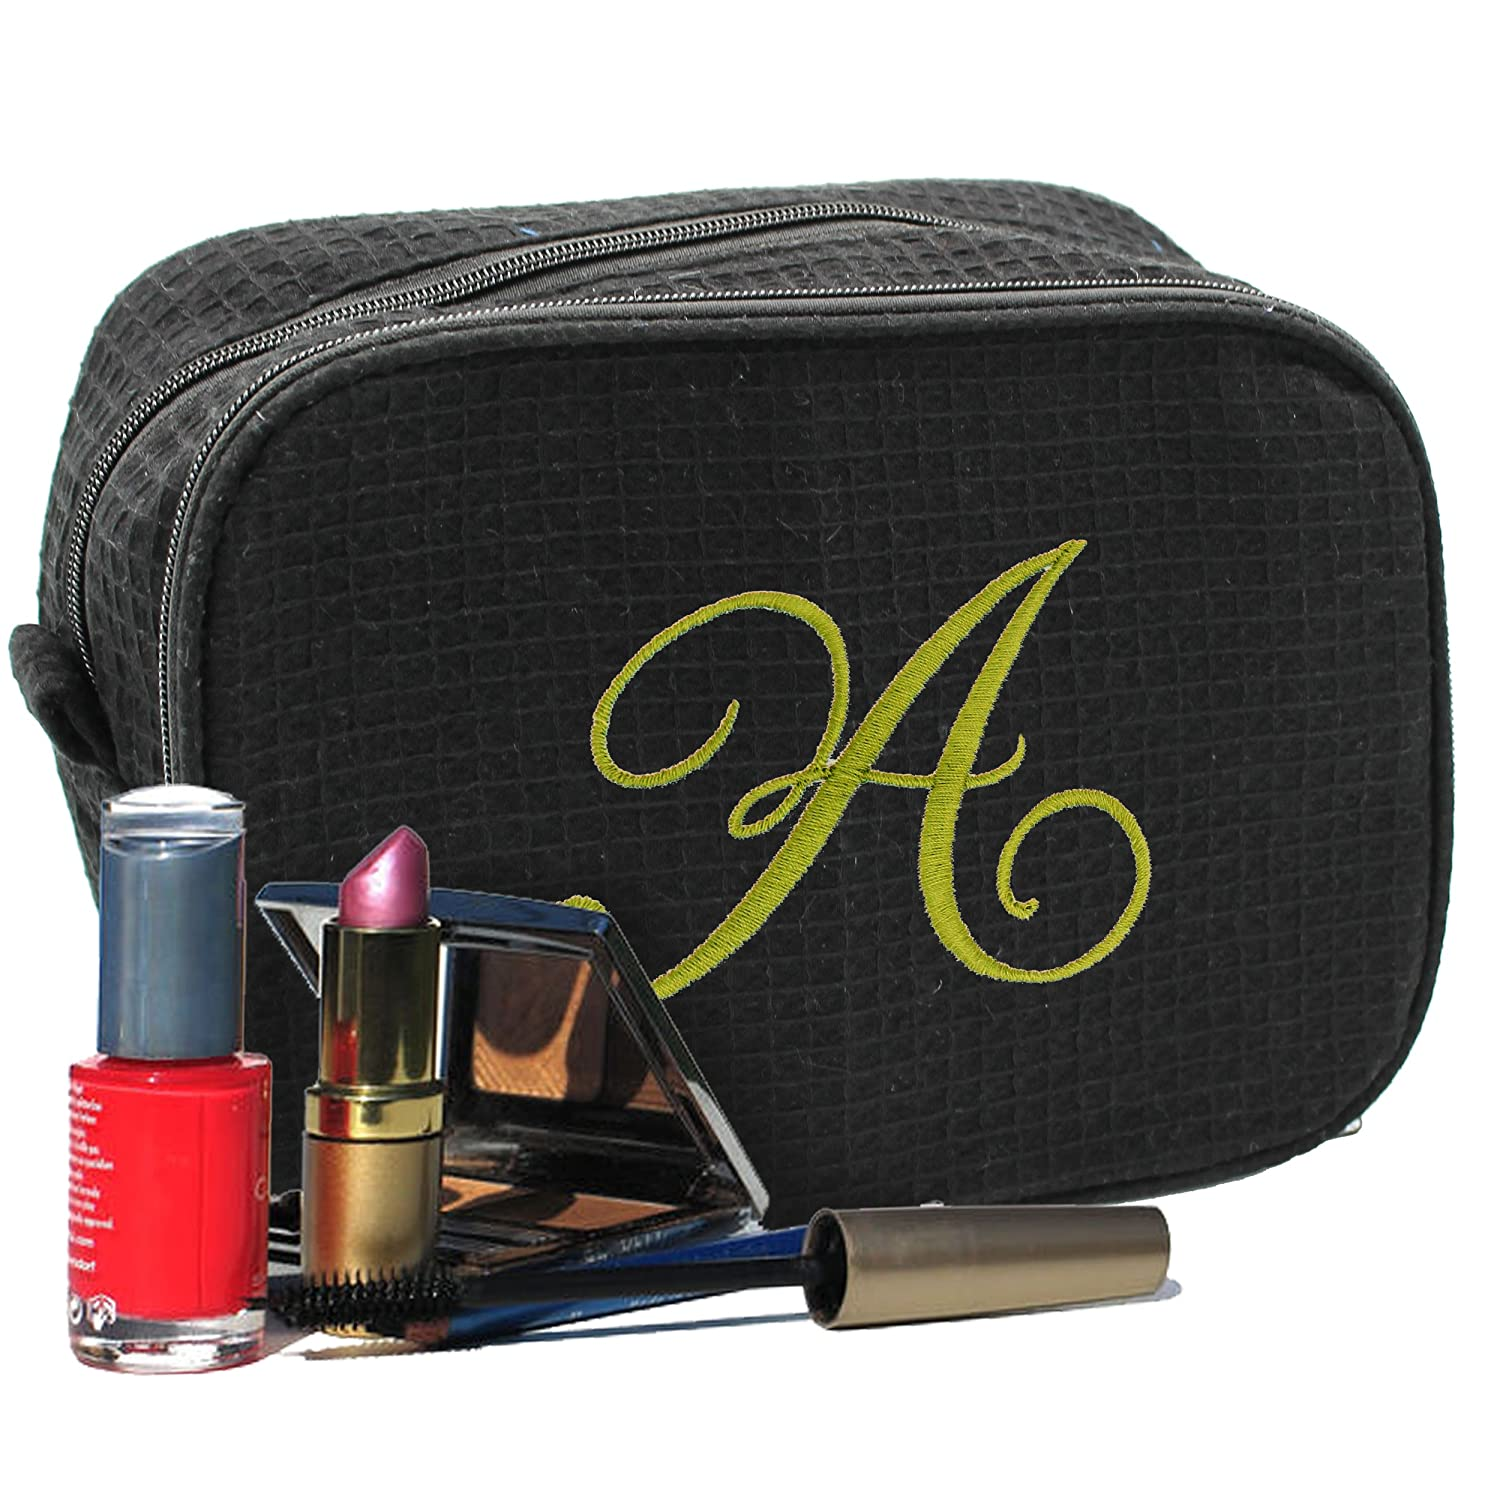 Personalized Waffle Makeup Bag - Monogrammed Cosmetic Make Up Travel Train Case - Custom Embroidered (Black)